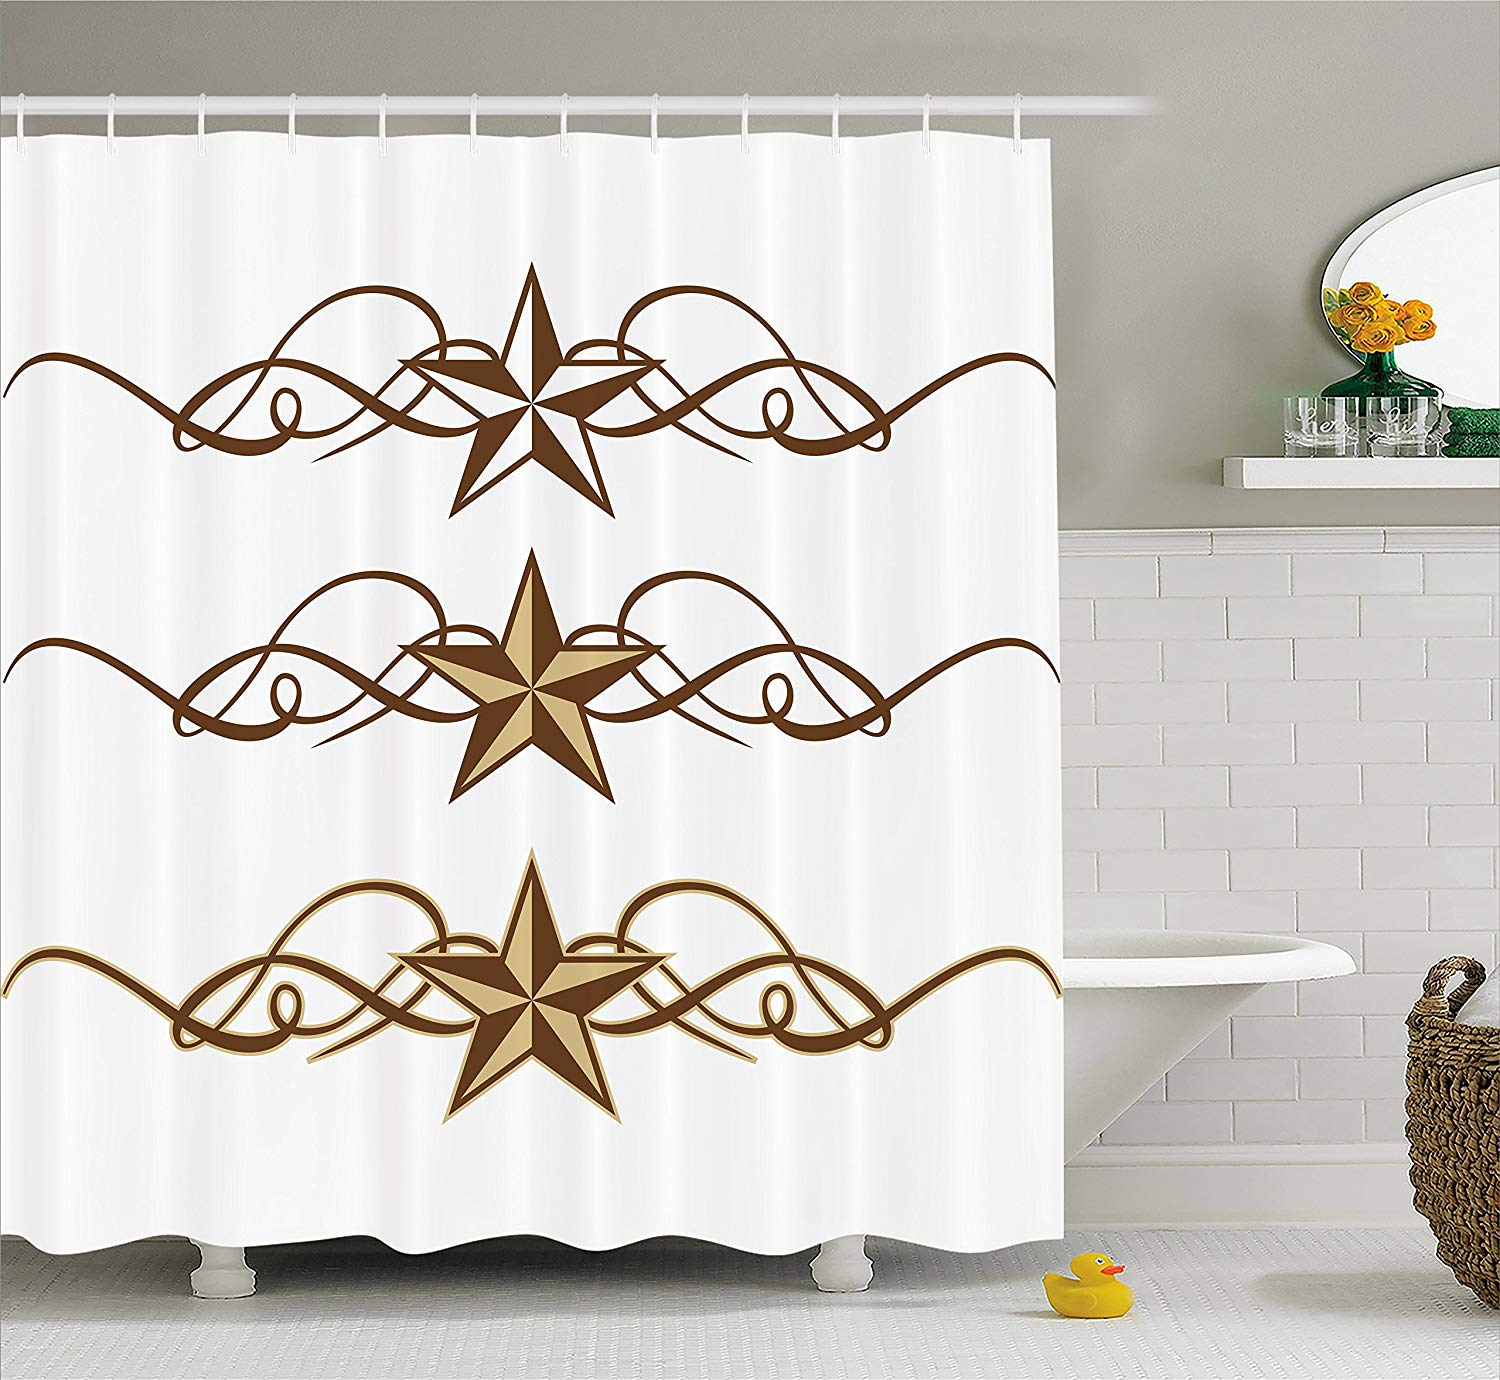 Primitive Country Decor Shower Curtain Western Stars Scroll Design Ornate Swirls Antique Artistic image